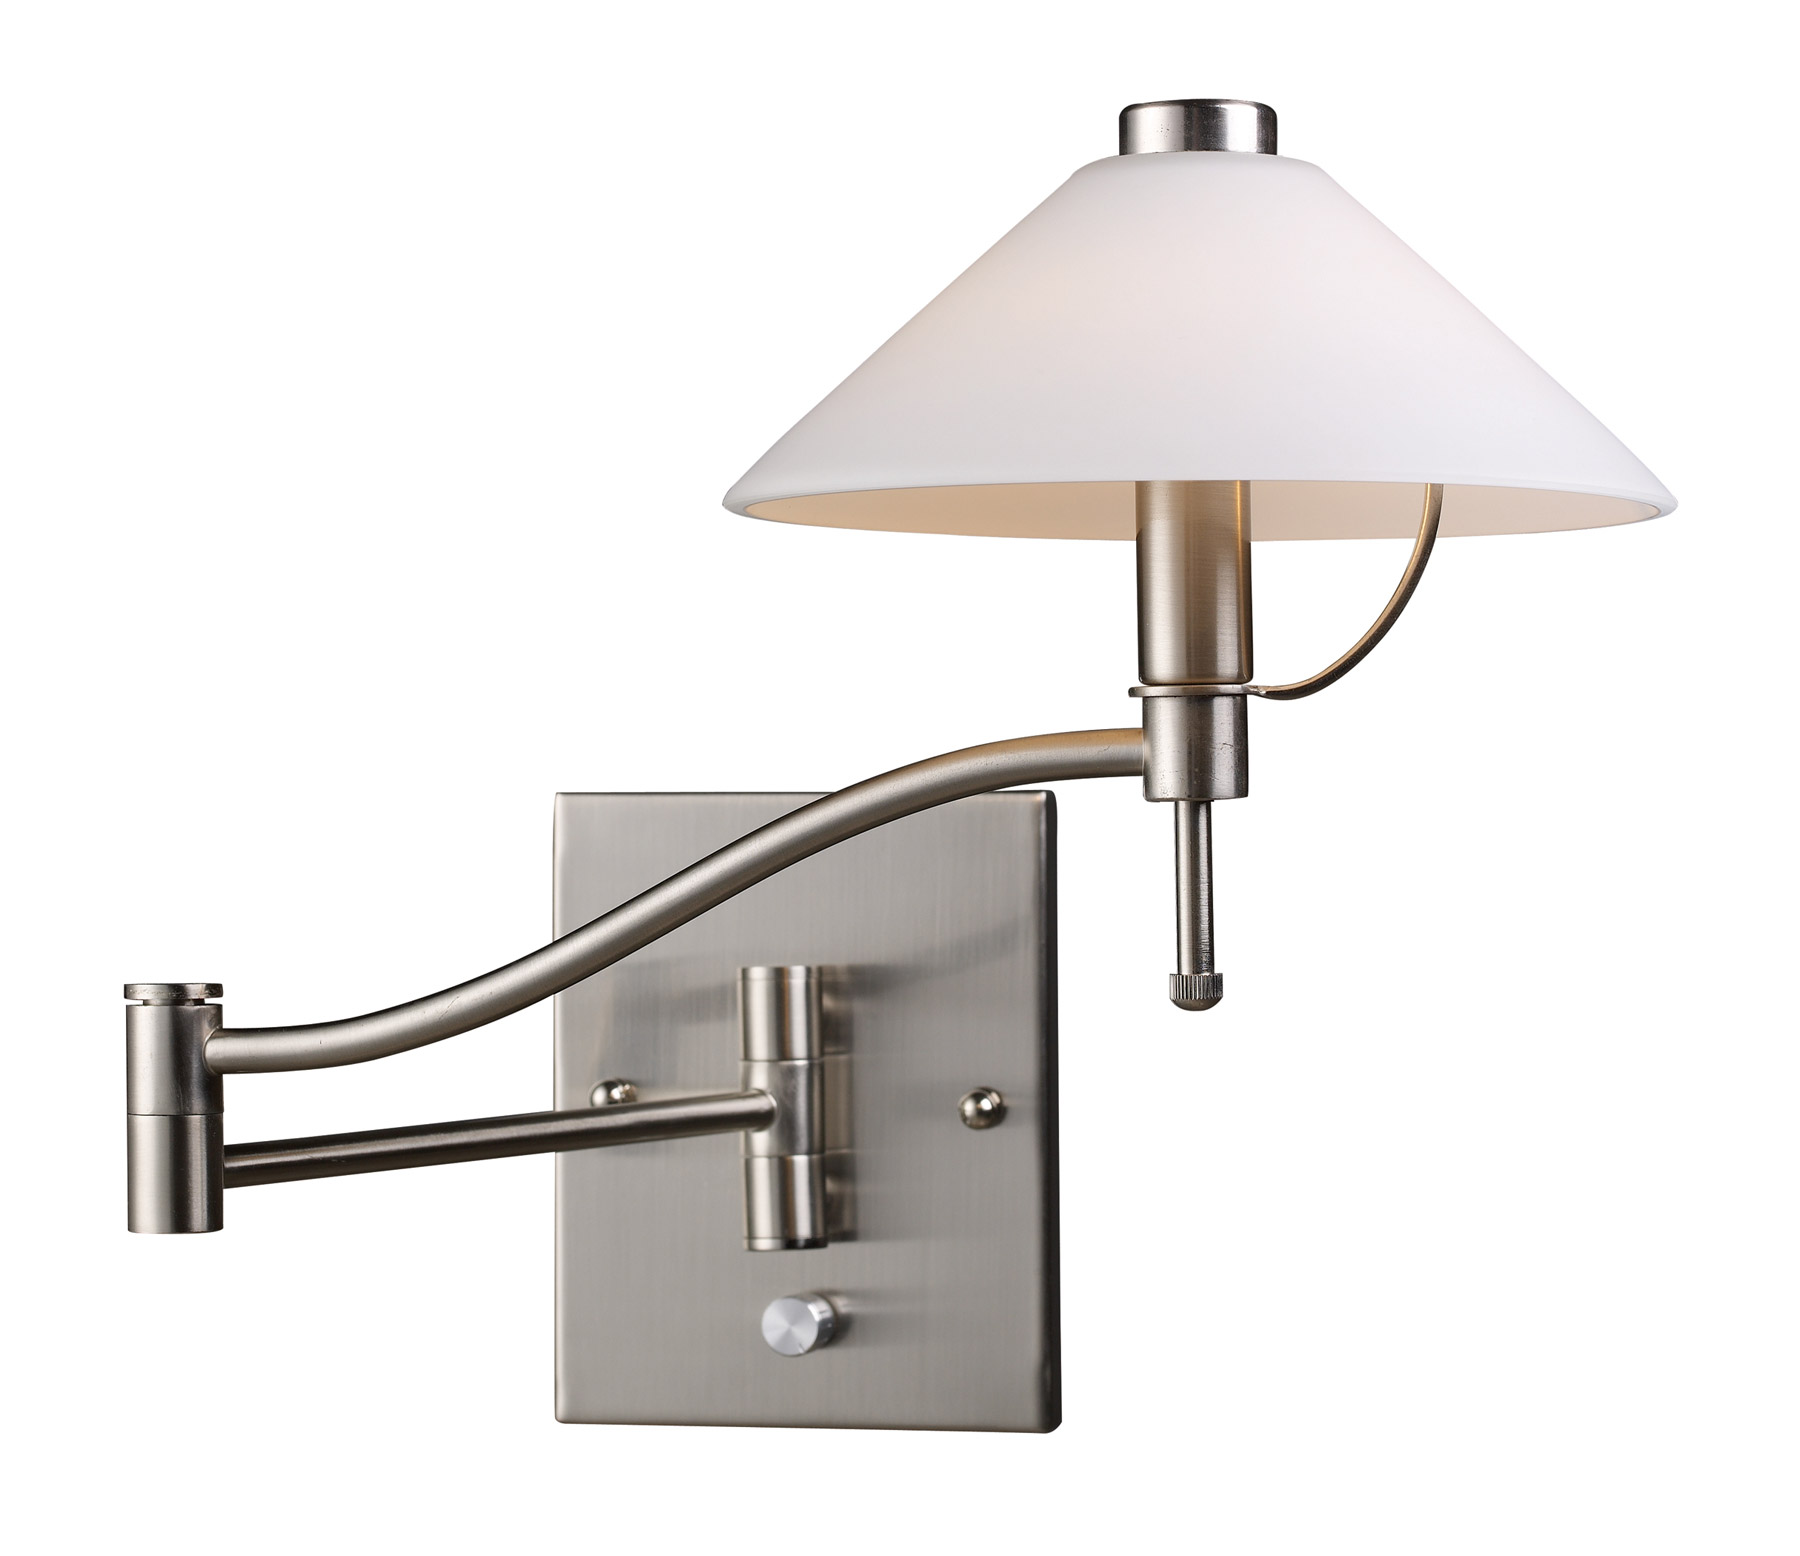 Elk lighting 10112 1 swingarm swing arm wall sconce Beautiful swing arm wall lamps and sconces